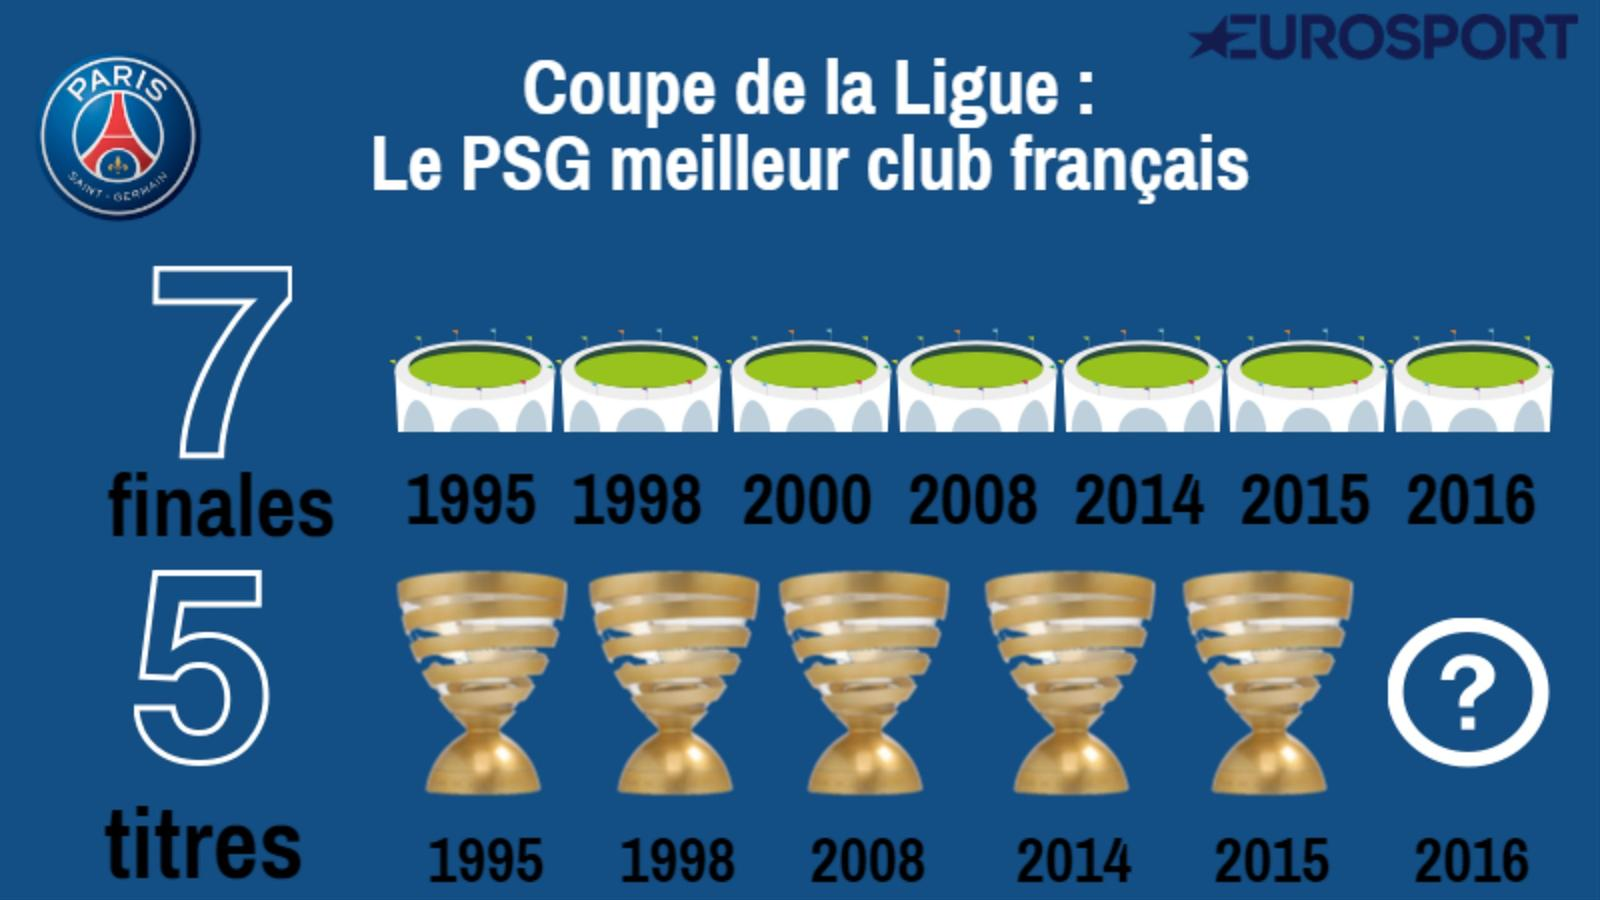 Coupe de la ligue le psg en finale reste le meilleur sp cialiste dans la comp tition coupe - Billet coupe de la ligue 2015 ...